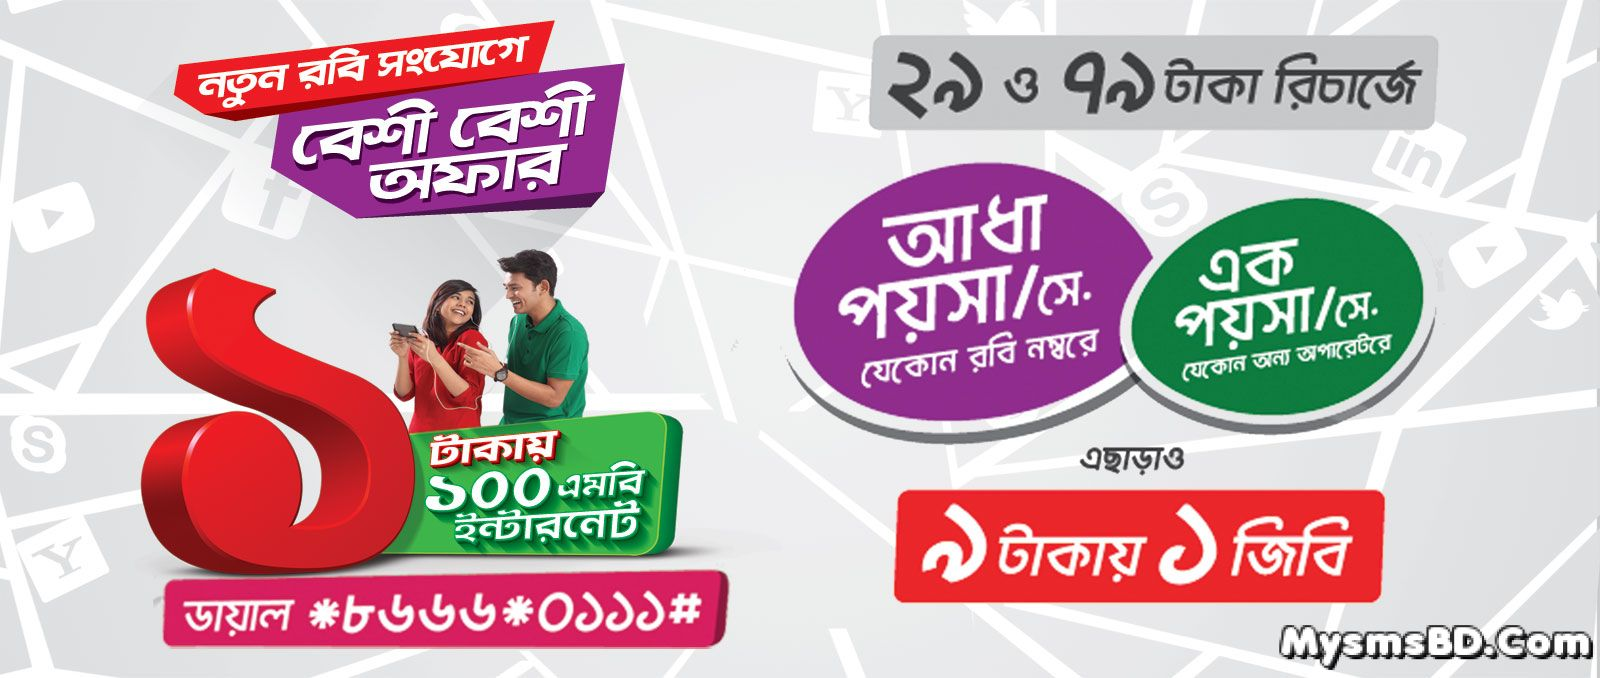 Robi New Prepaid SIM Connection Offer !! 100MB 1Tk-1GB 9TK, Unilever Gift Pack | Free Tk29 Card And More.